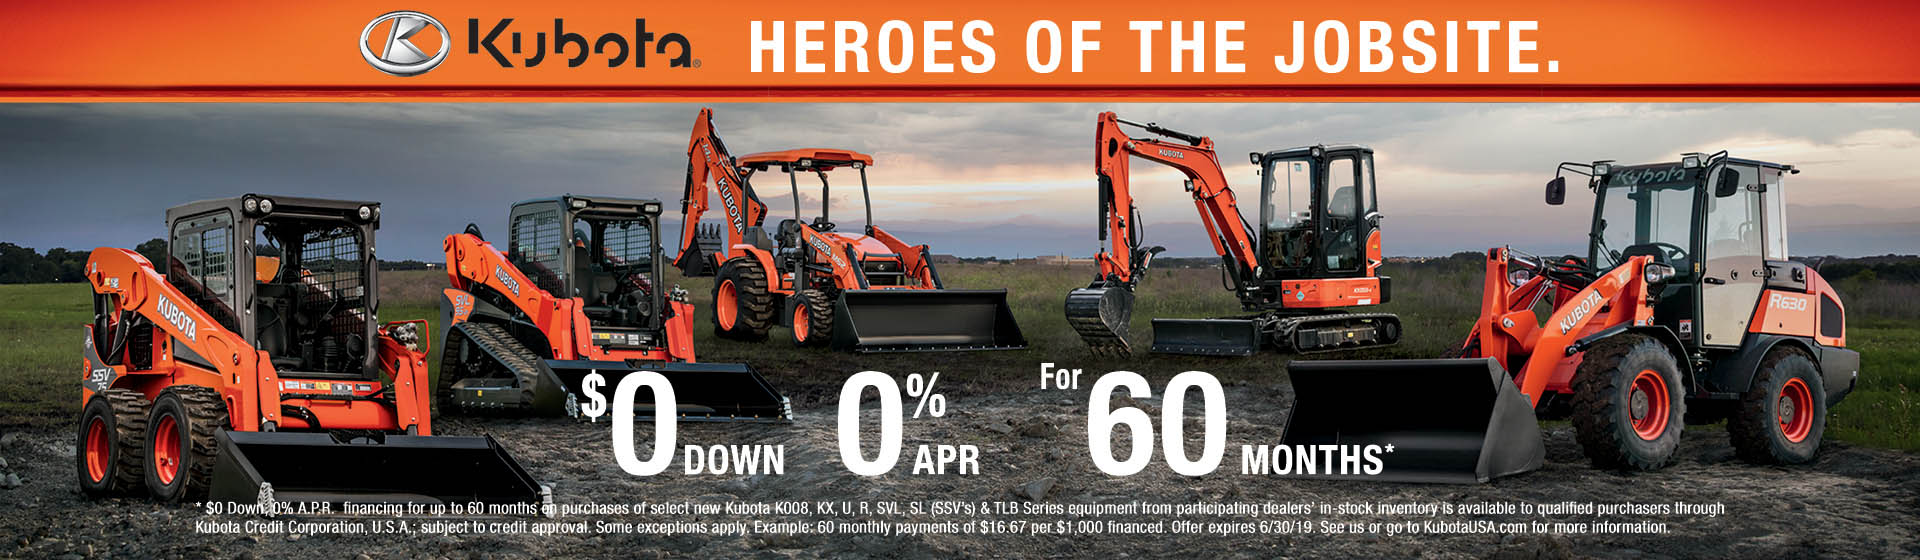 Kubota construction - $0 down 0% apr for 60 months